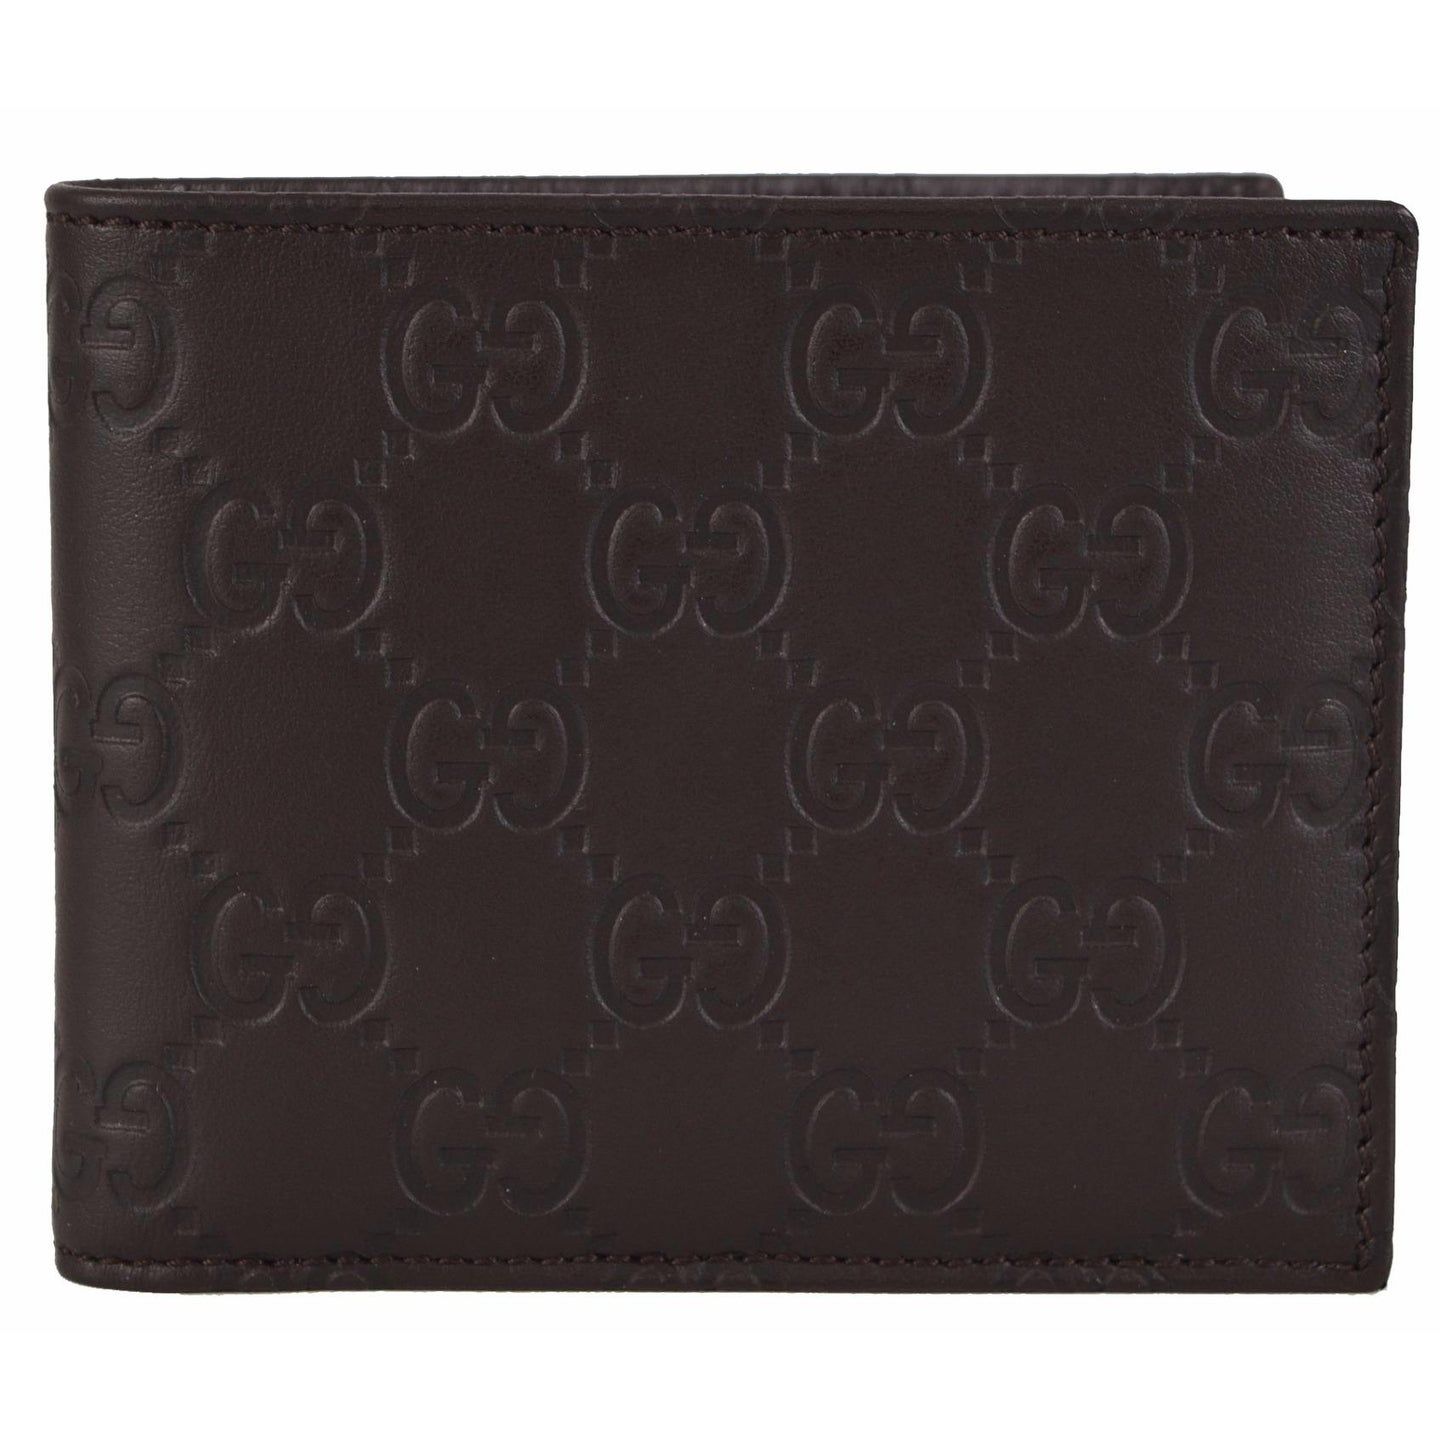 Gucci 260987 Men's Brown Leather GG Guccissima Bifold Wallet - Thumbnail 0